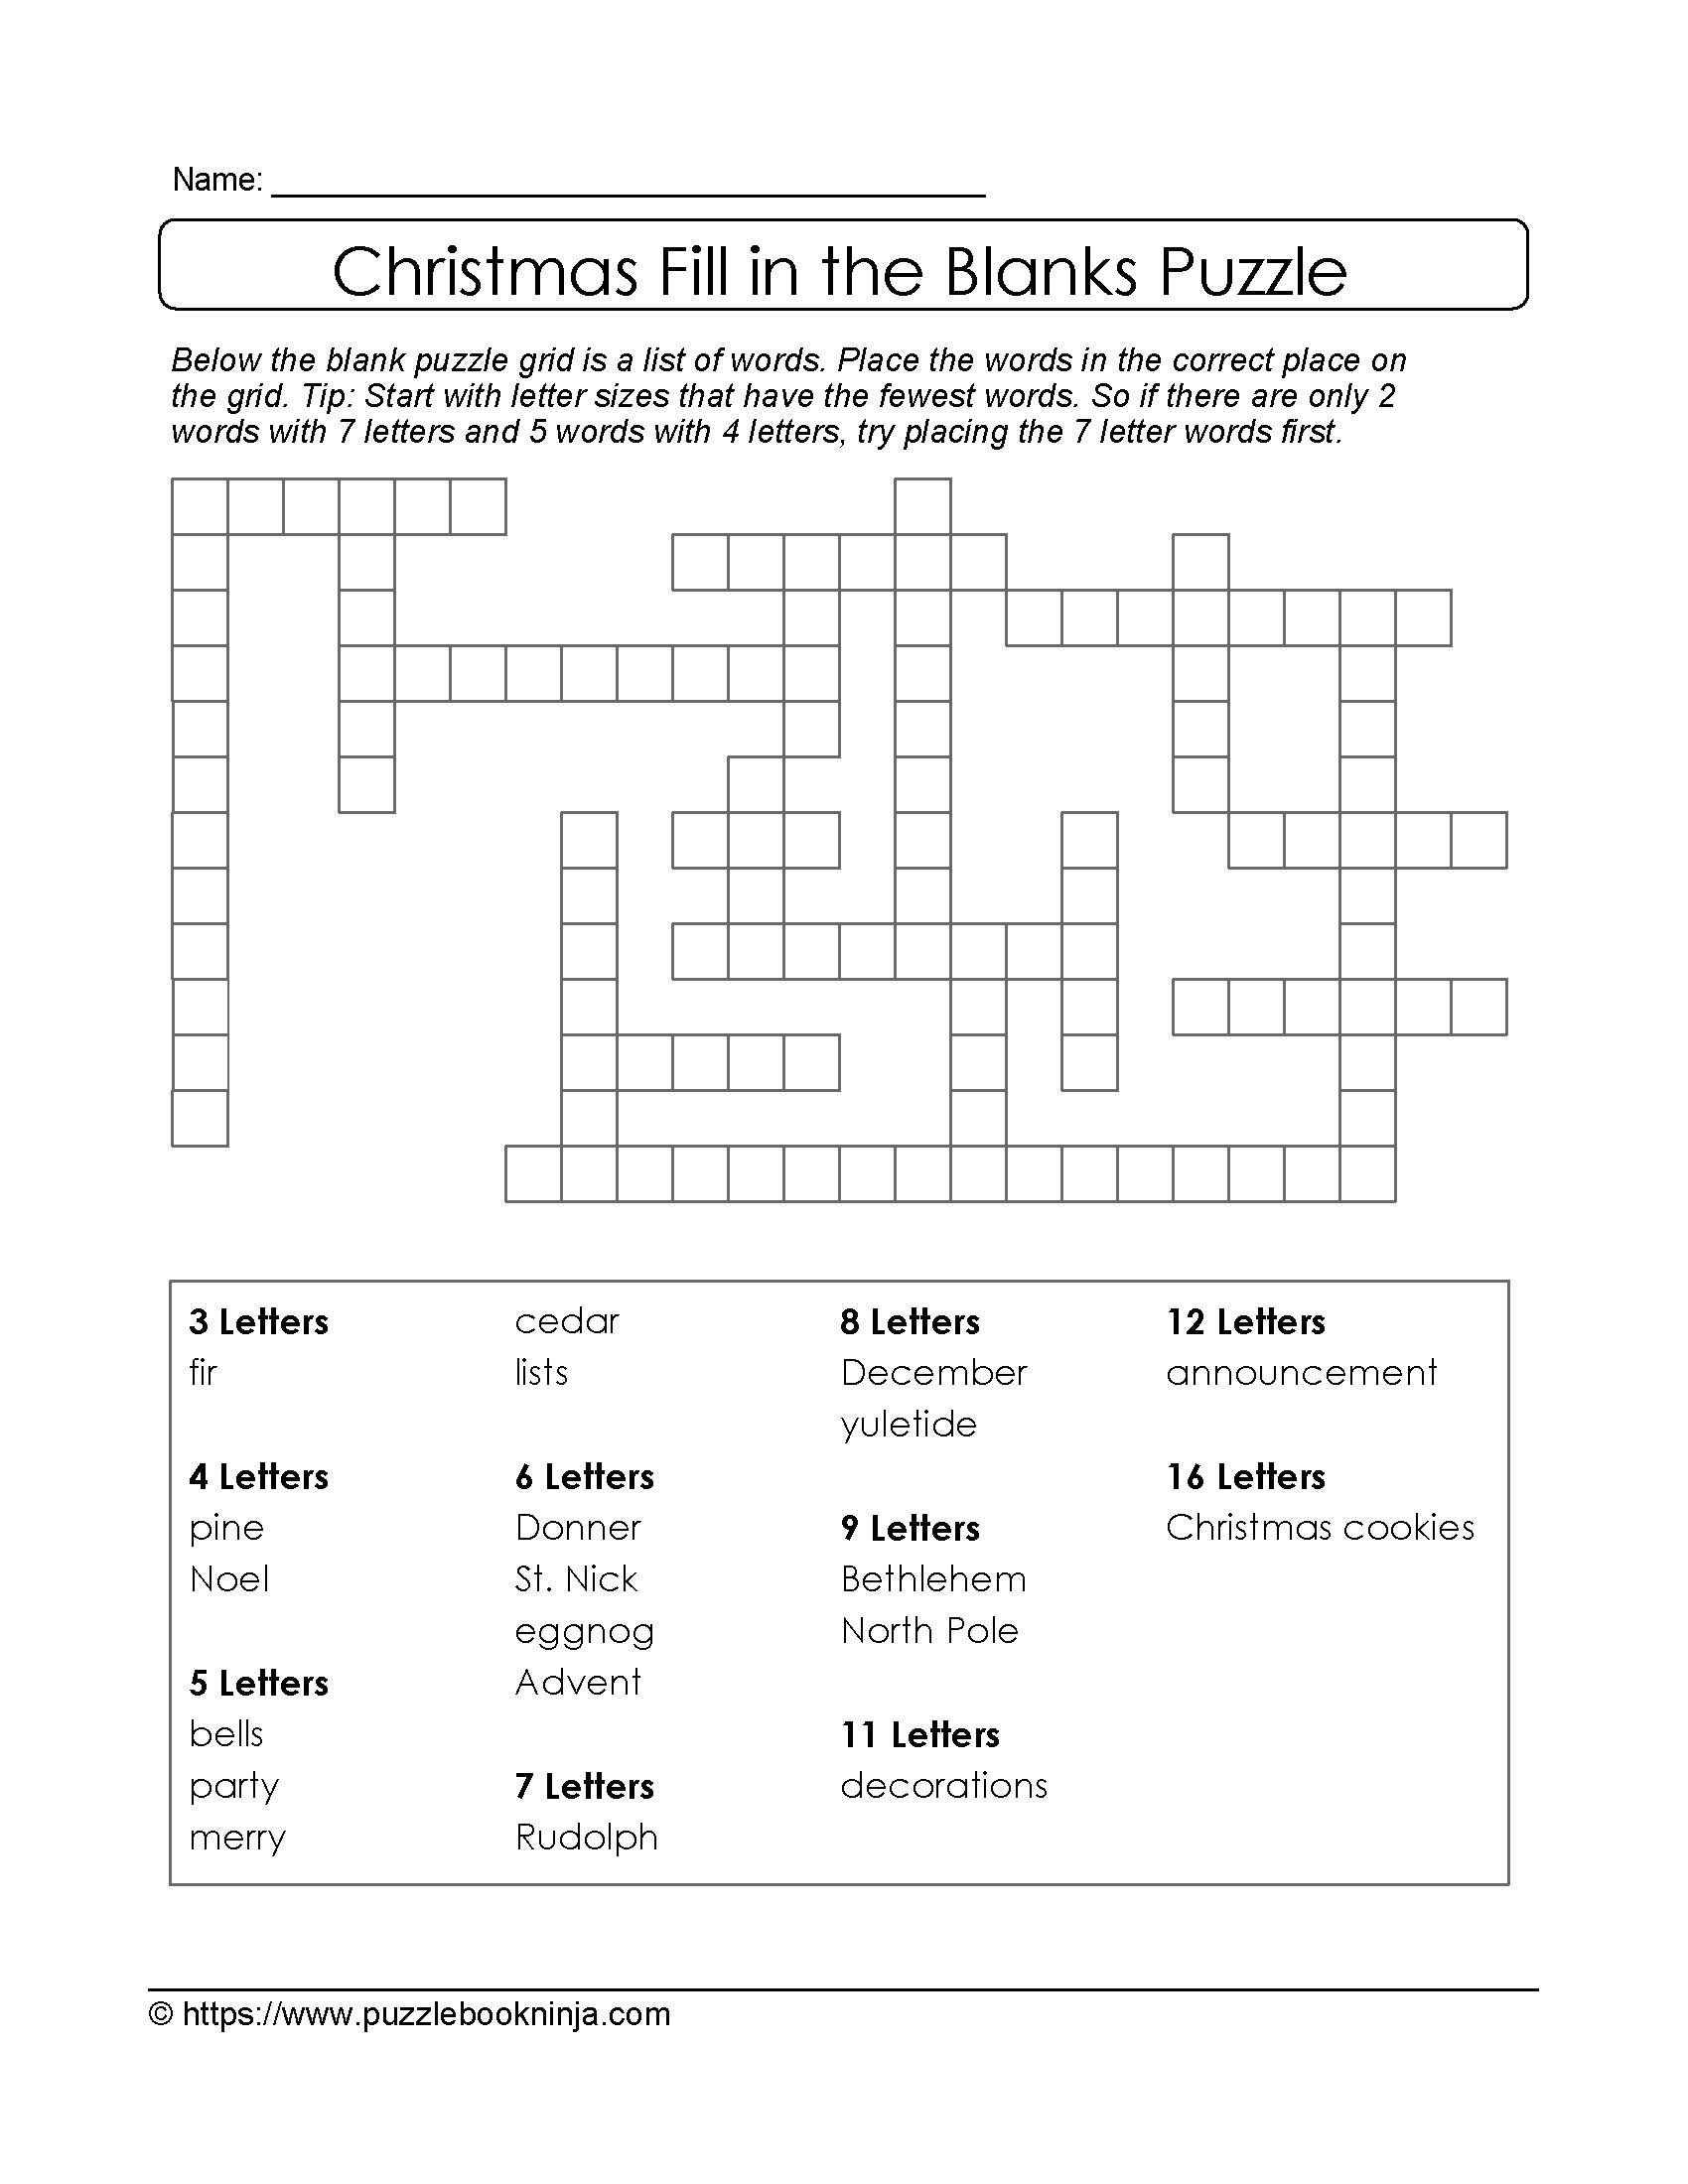 Christmas Printable Puzzle. Free Fill In The Blanks. | Christmas - Printable Xmas Puzzles